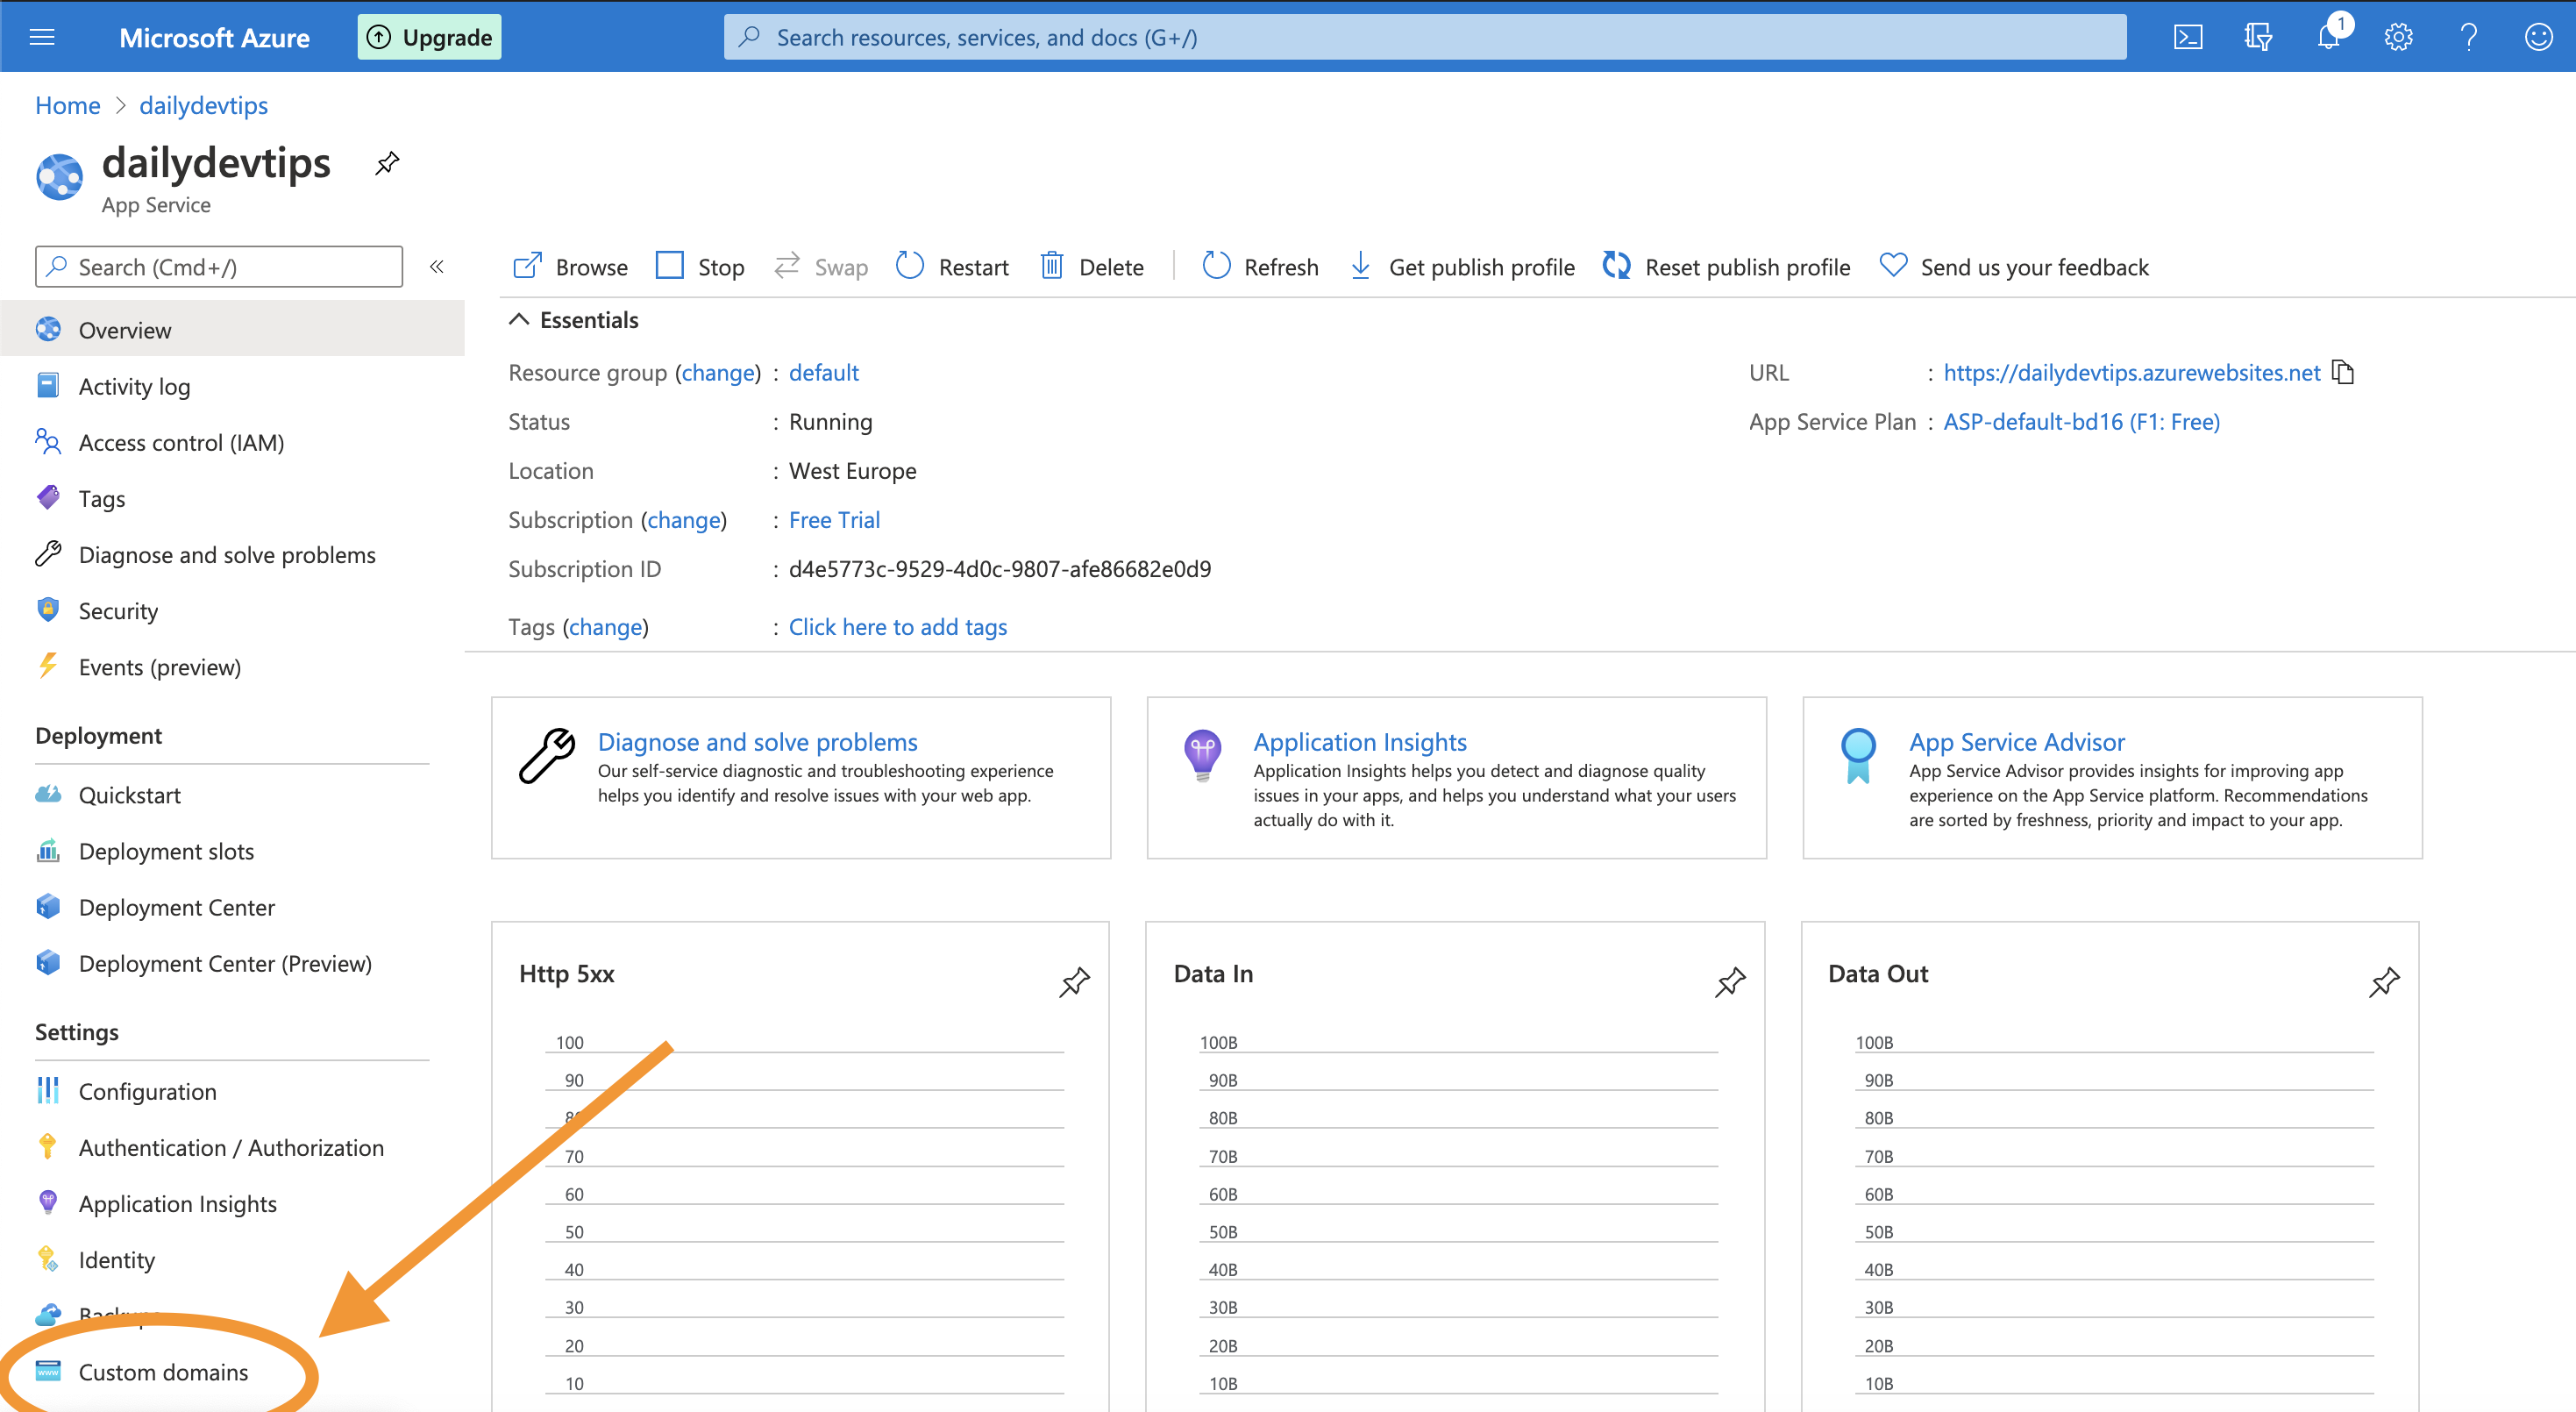 Azure custom domains section